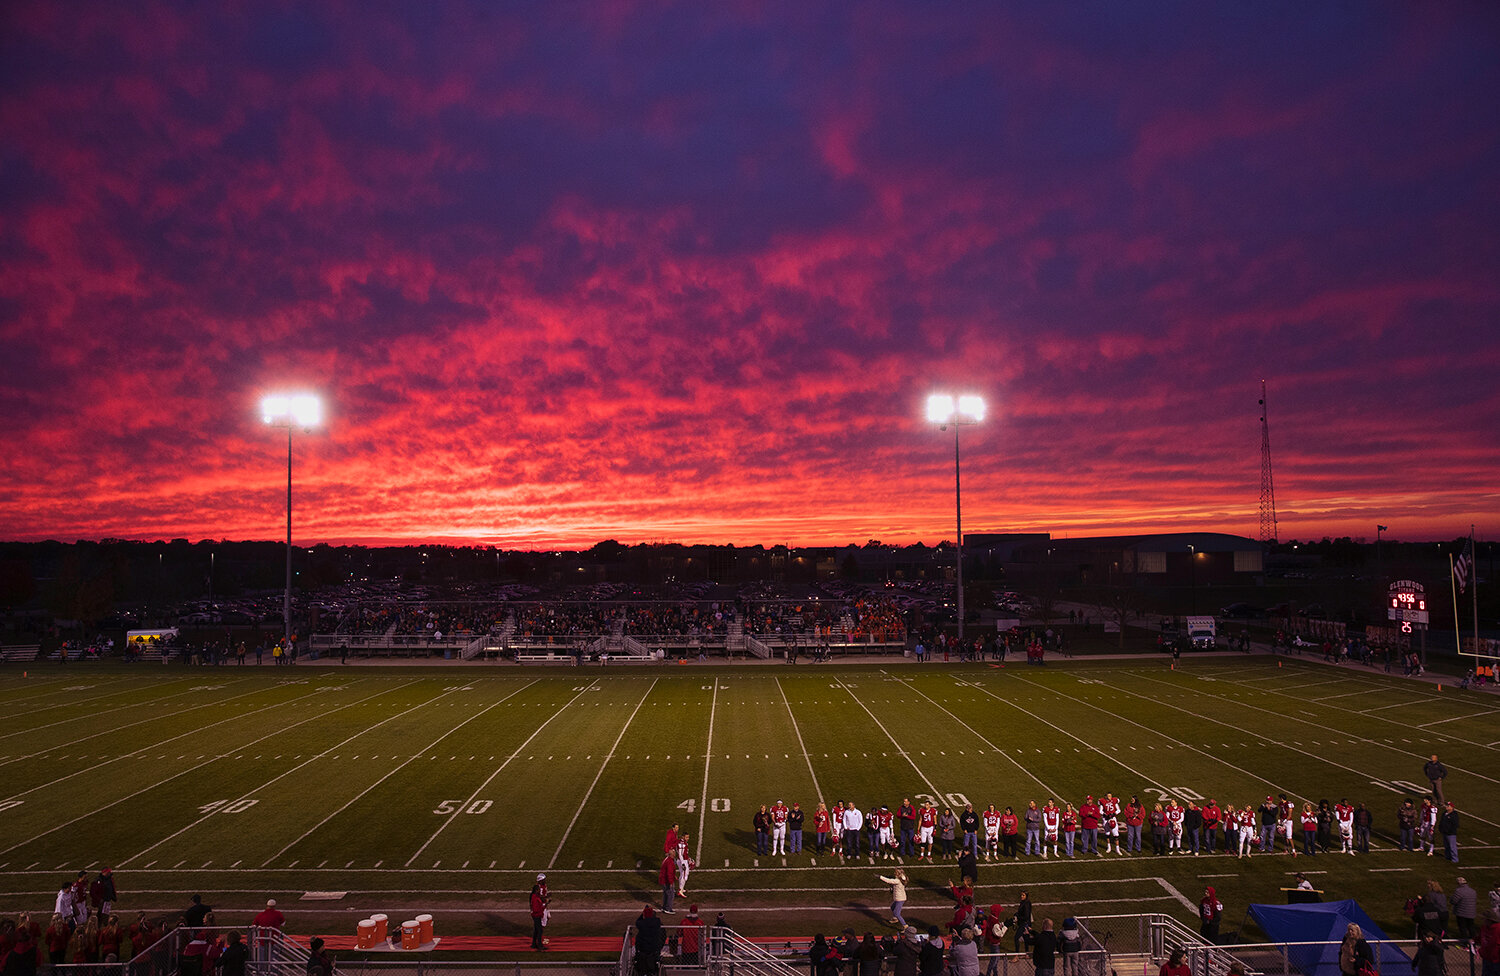 Glenwood seniors line up in front of a colorful sunset for Senior Night recognition before facing off against Rochester at Glenwood High School Friday, Oct. 25, 2019.  [Ted Schurter/The State Journal-Register]